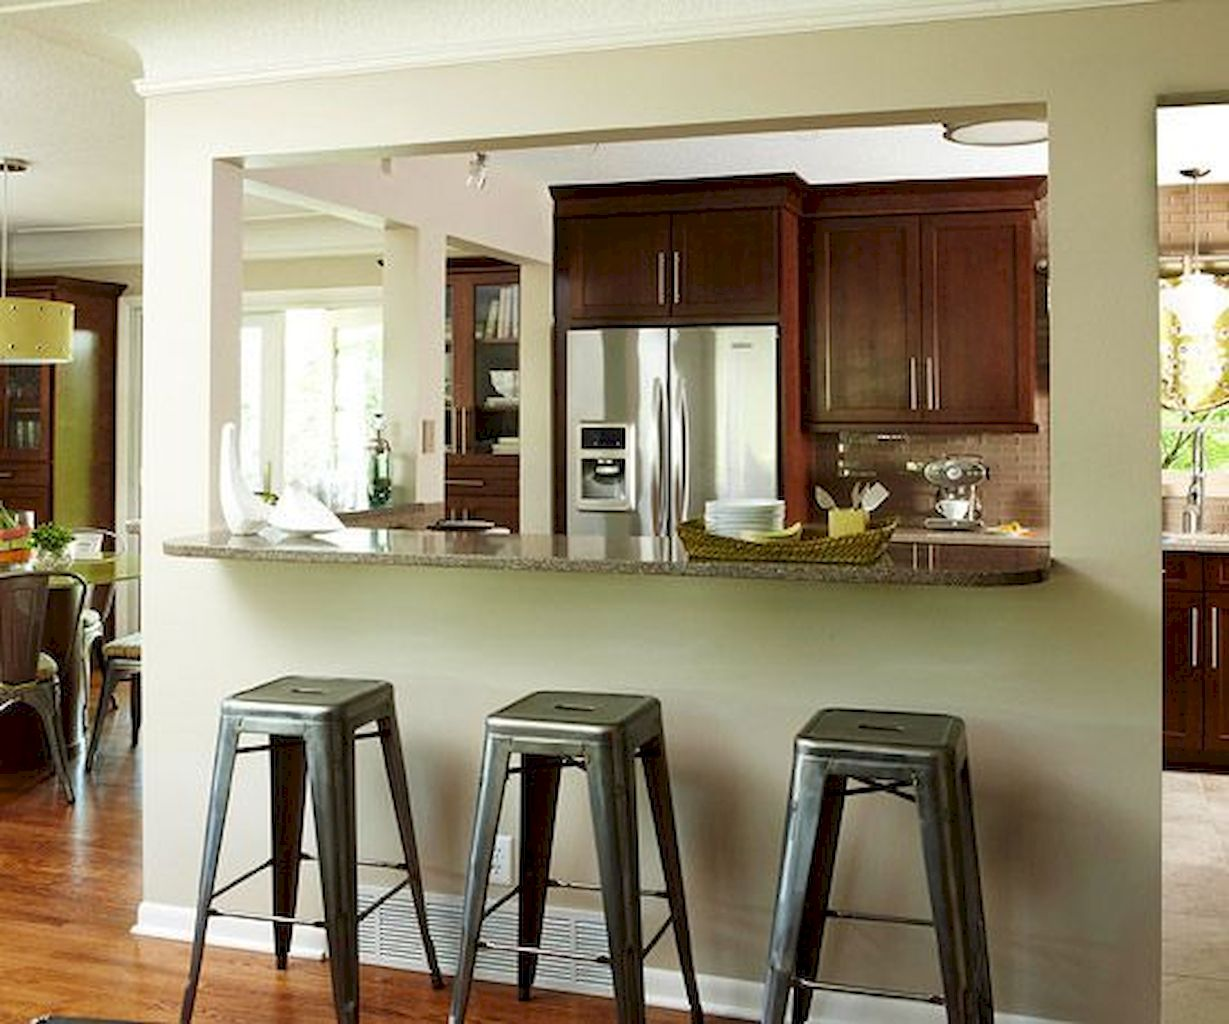 Kitchen Plan And Design For Small Room (54)